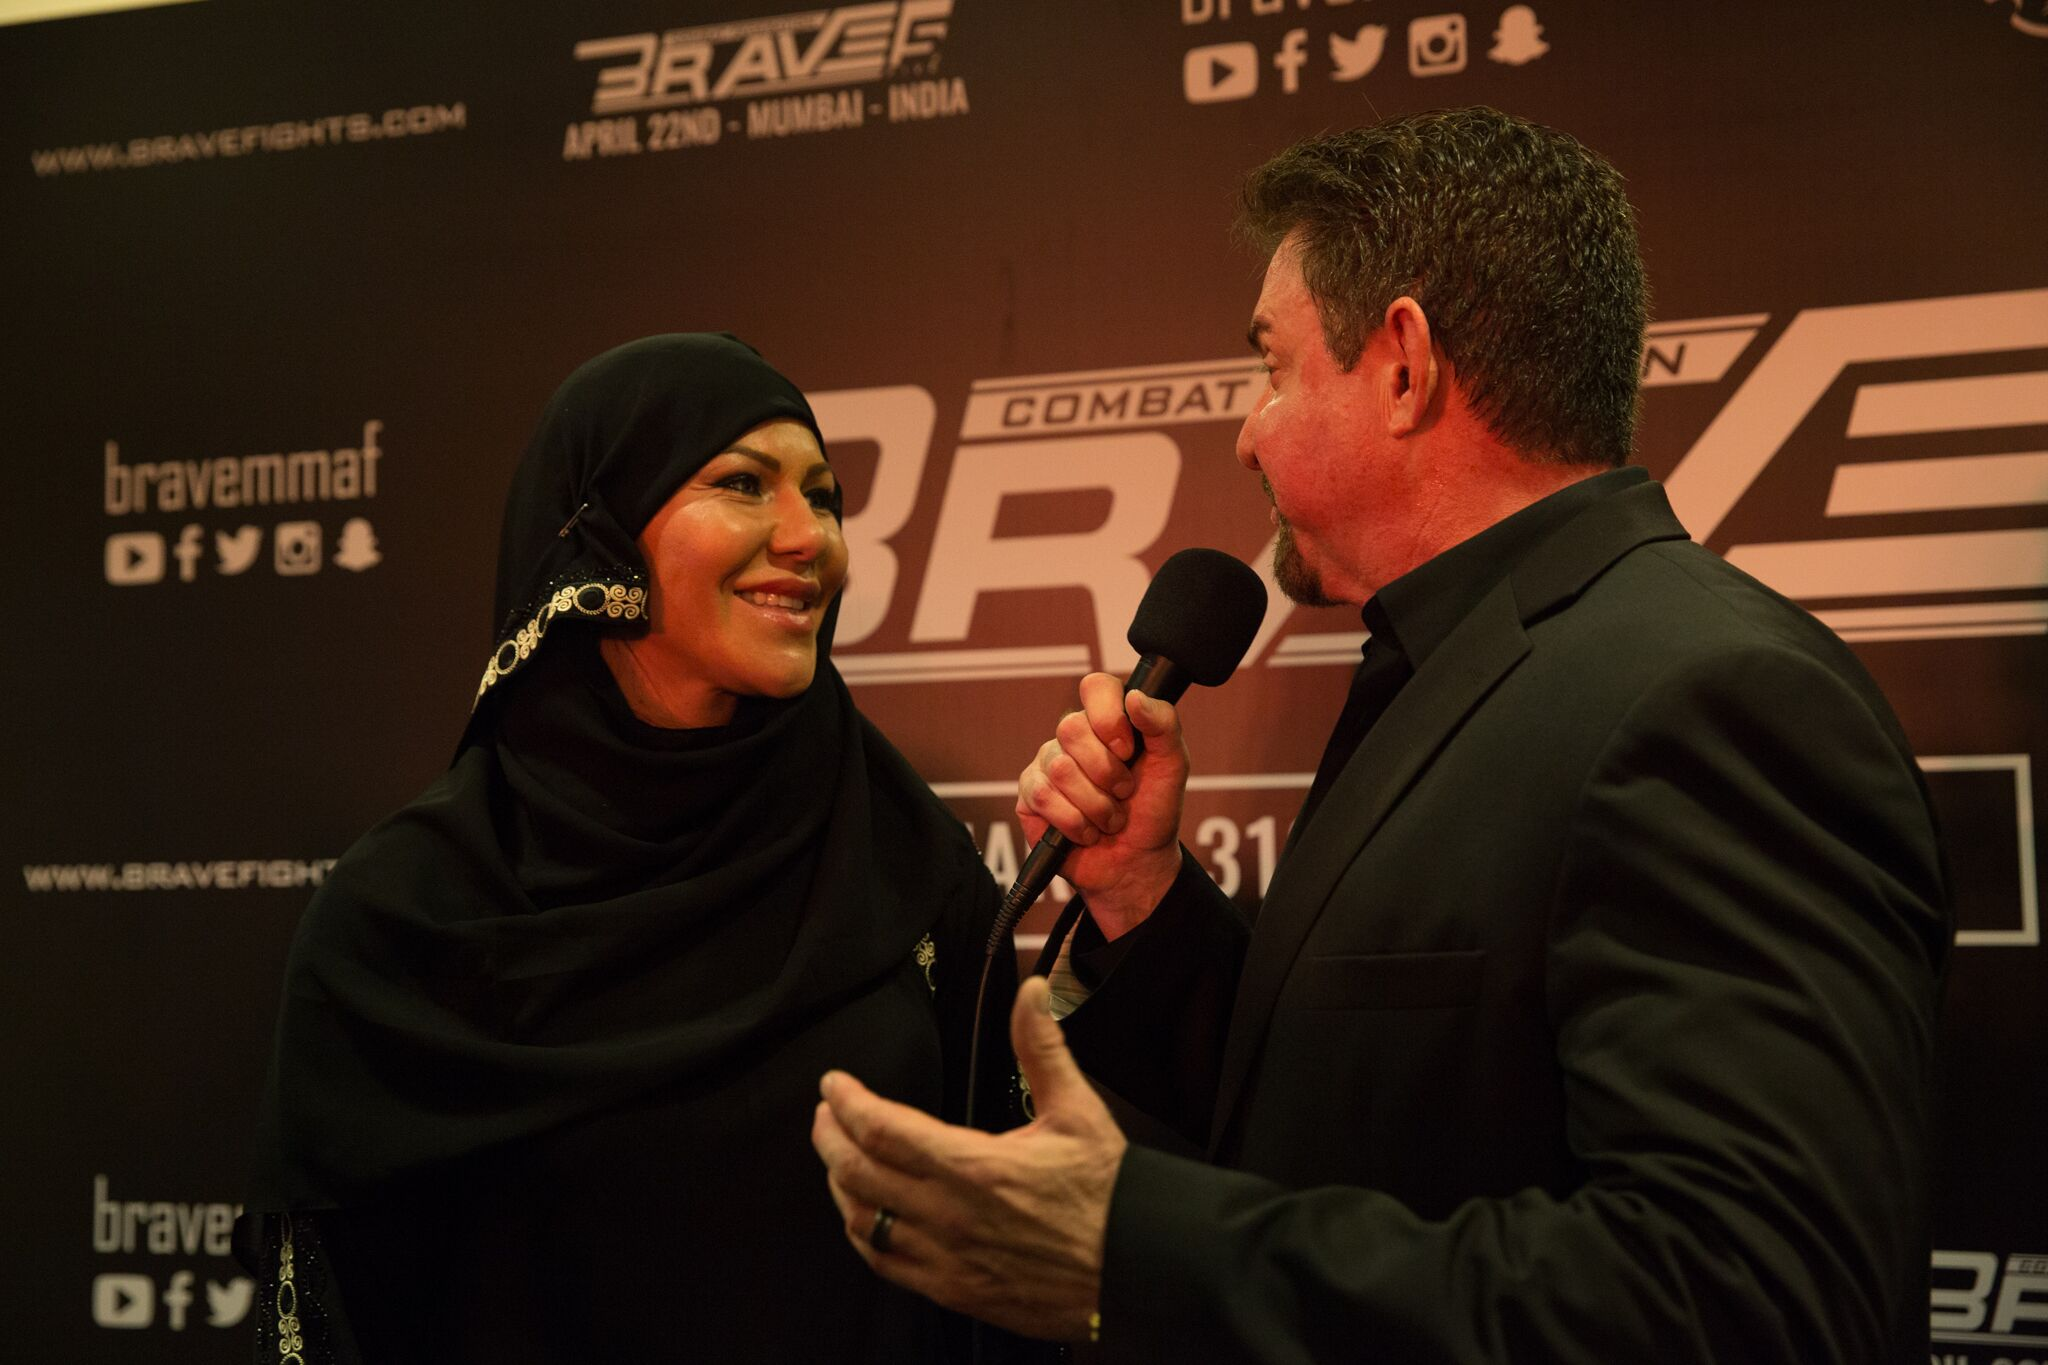 Cris Cyborg confirmed to attend BRAVE CF 31 in South Africa - Cris Cyborg MMA